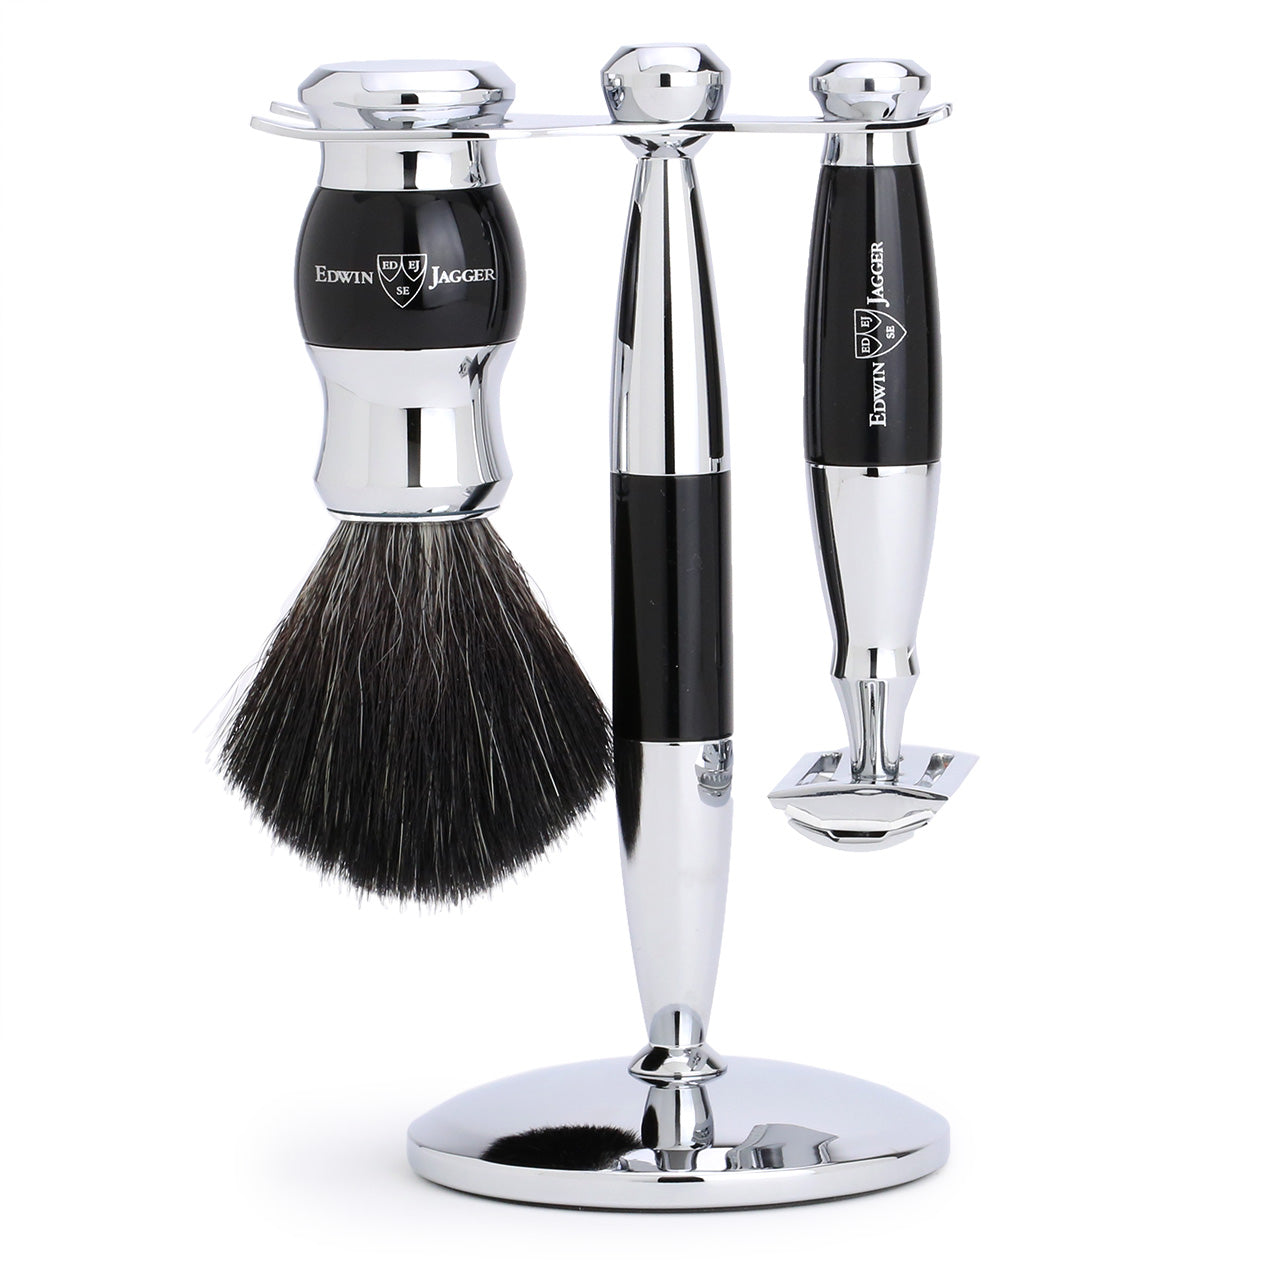 Edwin Jagger Chrome & black 3 piece set with black synthetic brush